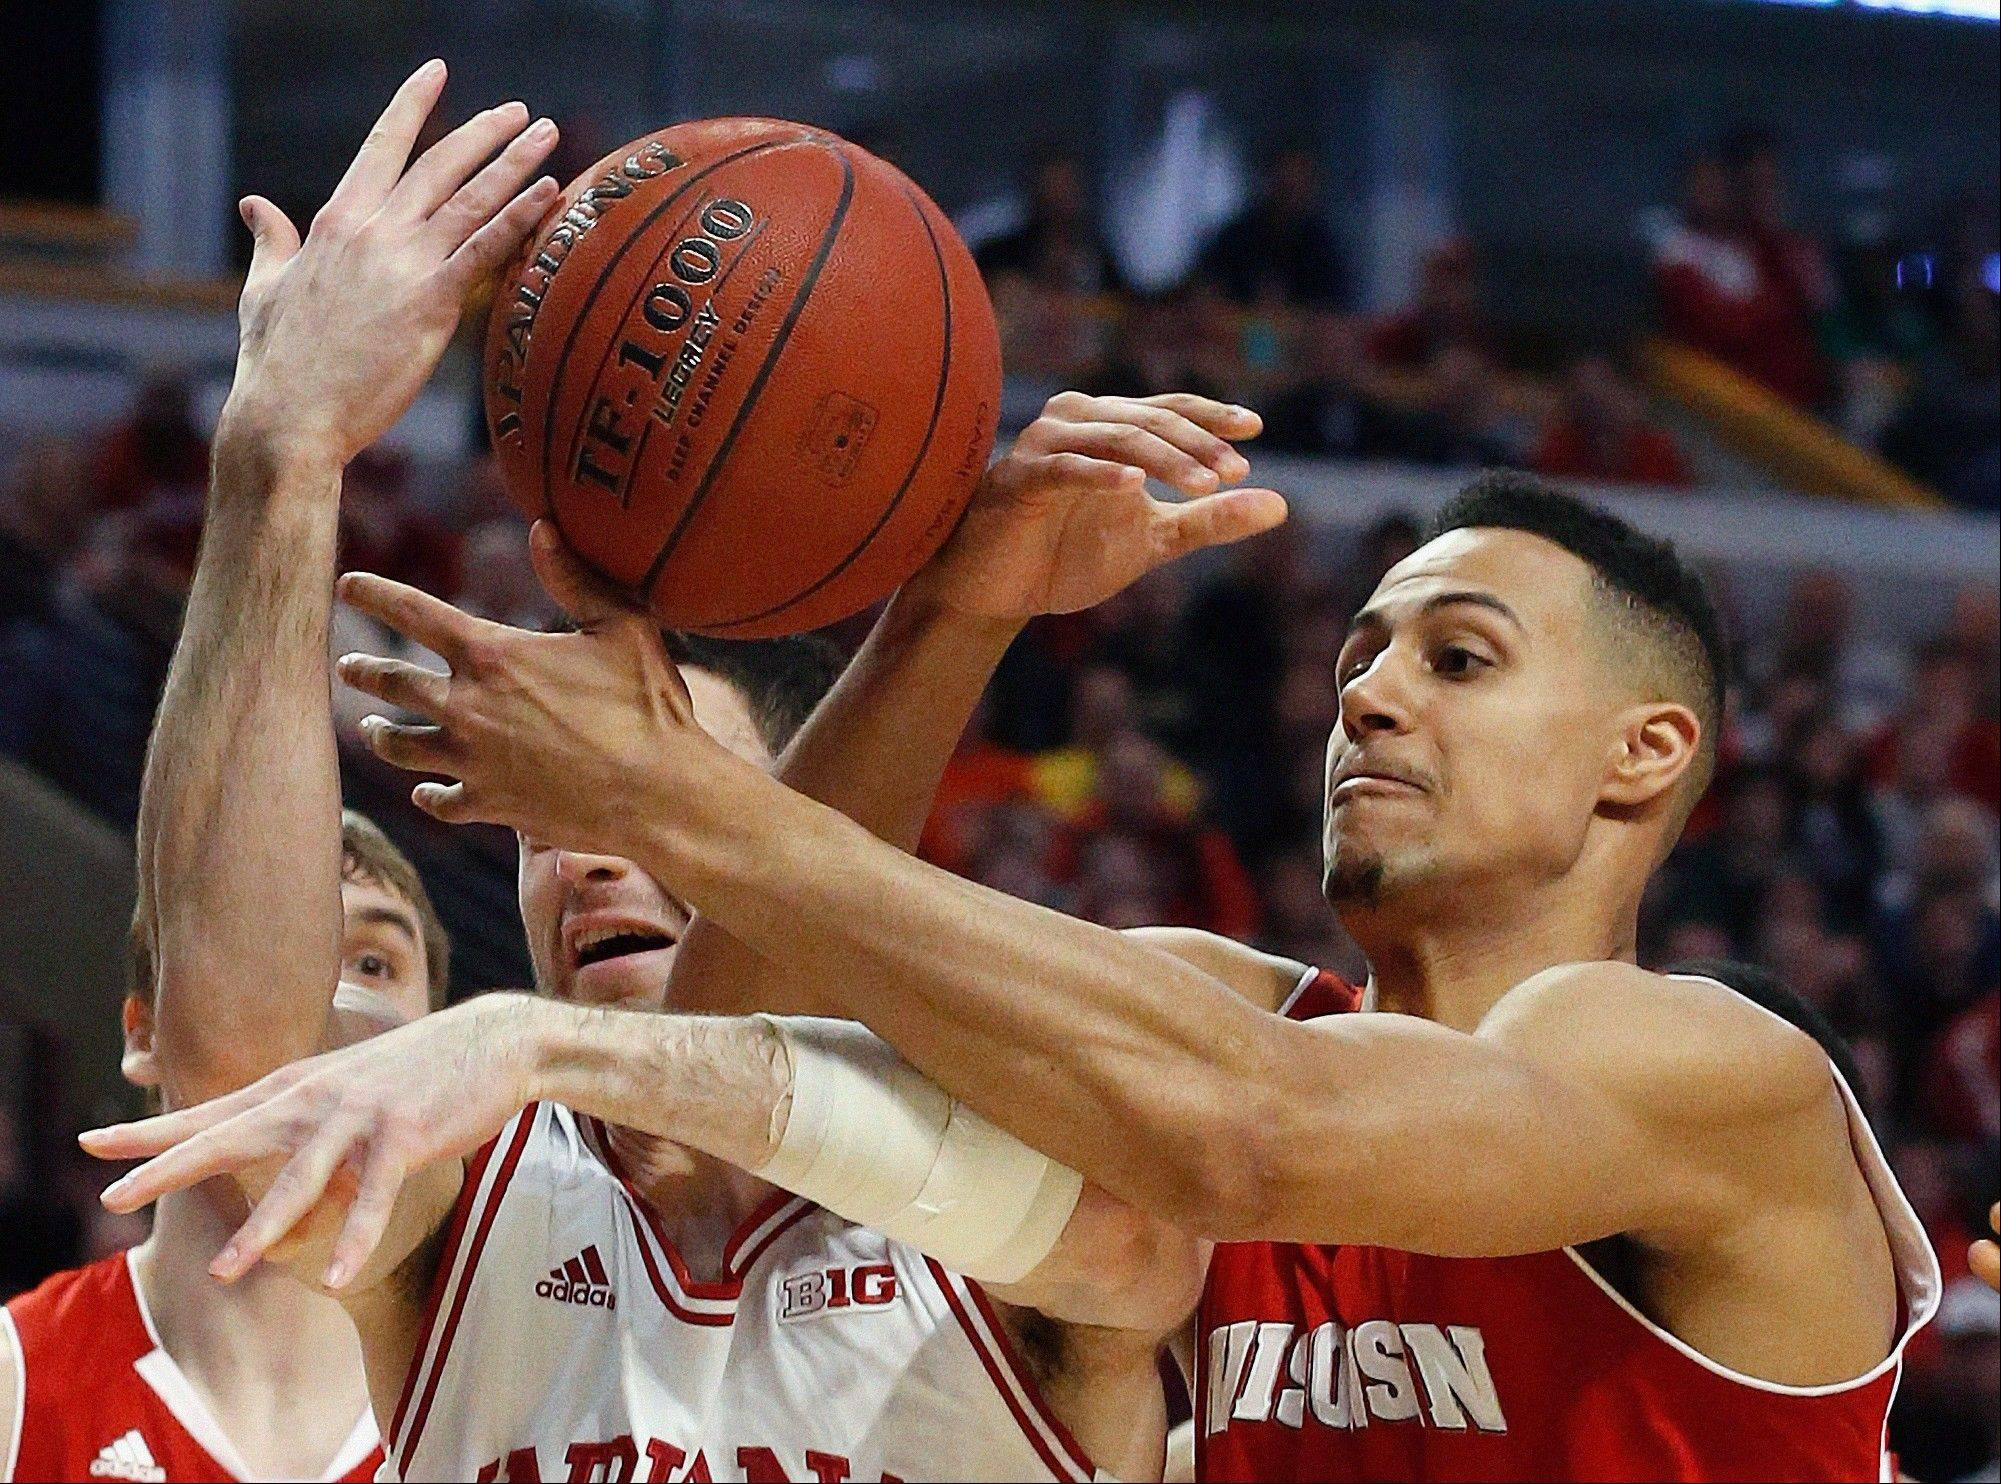 Indiana's Will Sheehey, left, and Wisconsin's Ryan Evans battle for a loose ball during the first half of an NCAA college basketball game in the semifinals of the Big Ten tournament Saturday, March 16, 2013, in Chicago. (AP Photo/Charles Rex Arbogast)